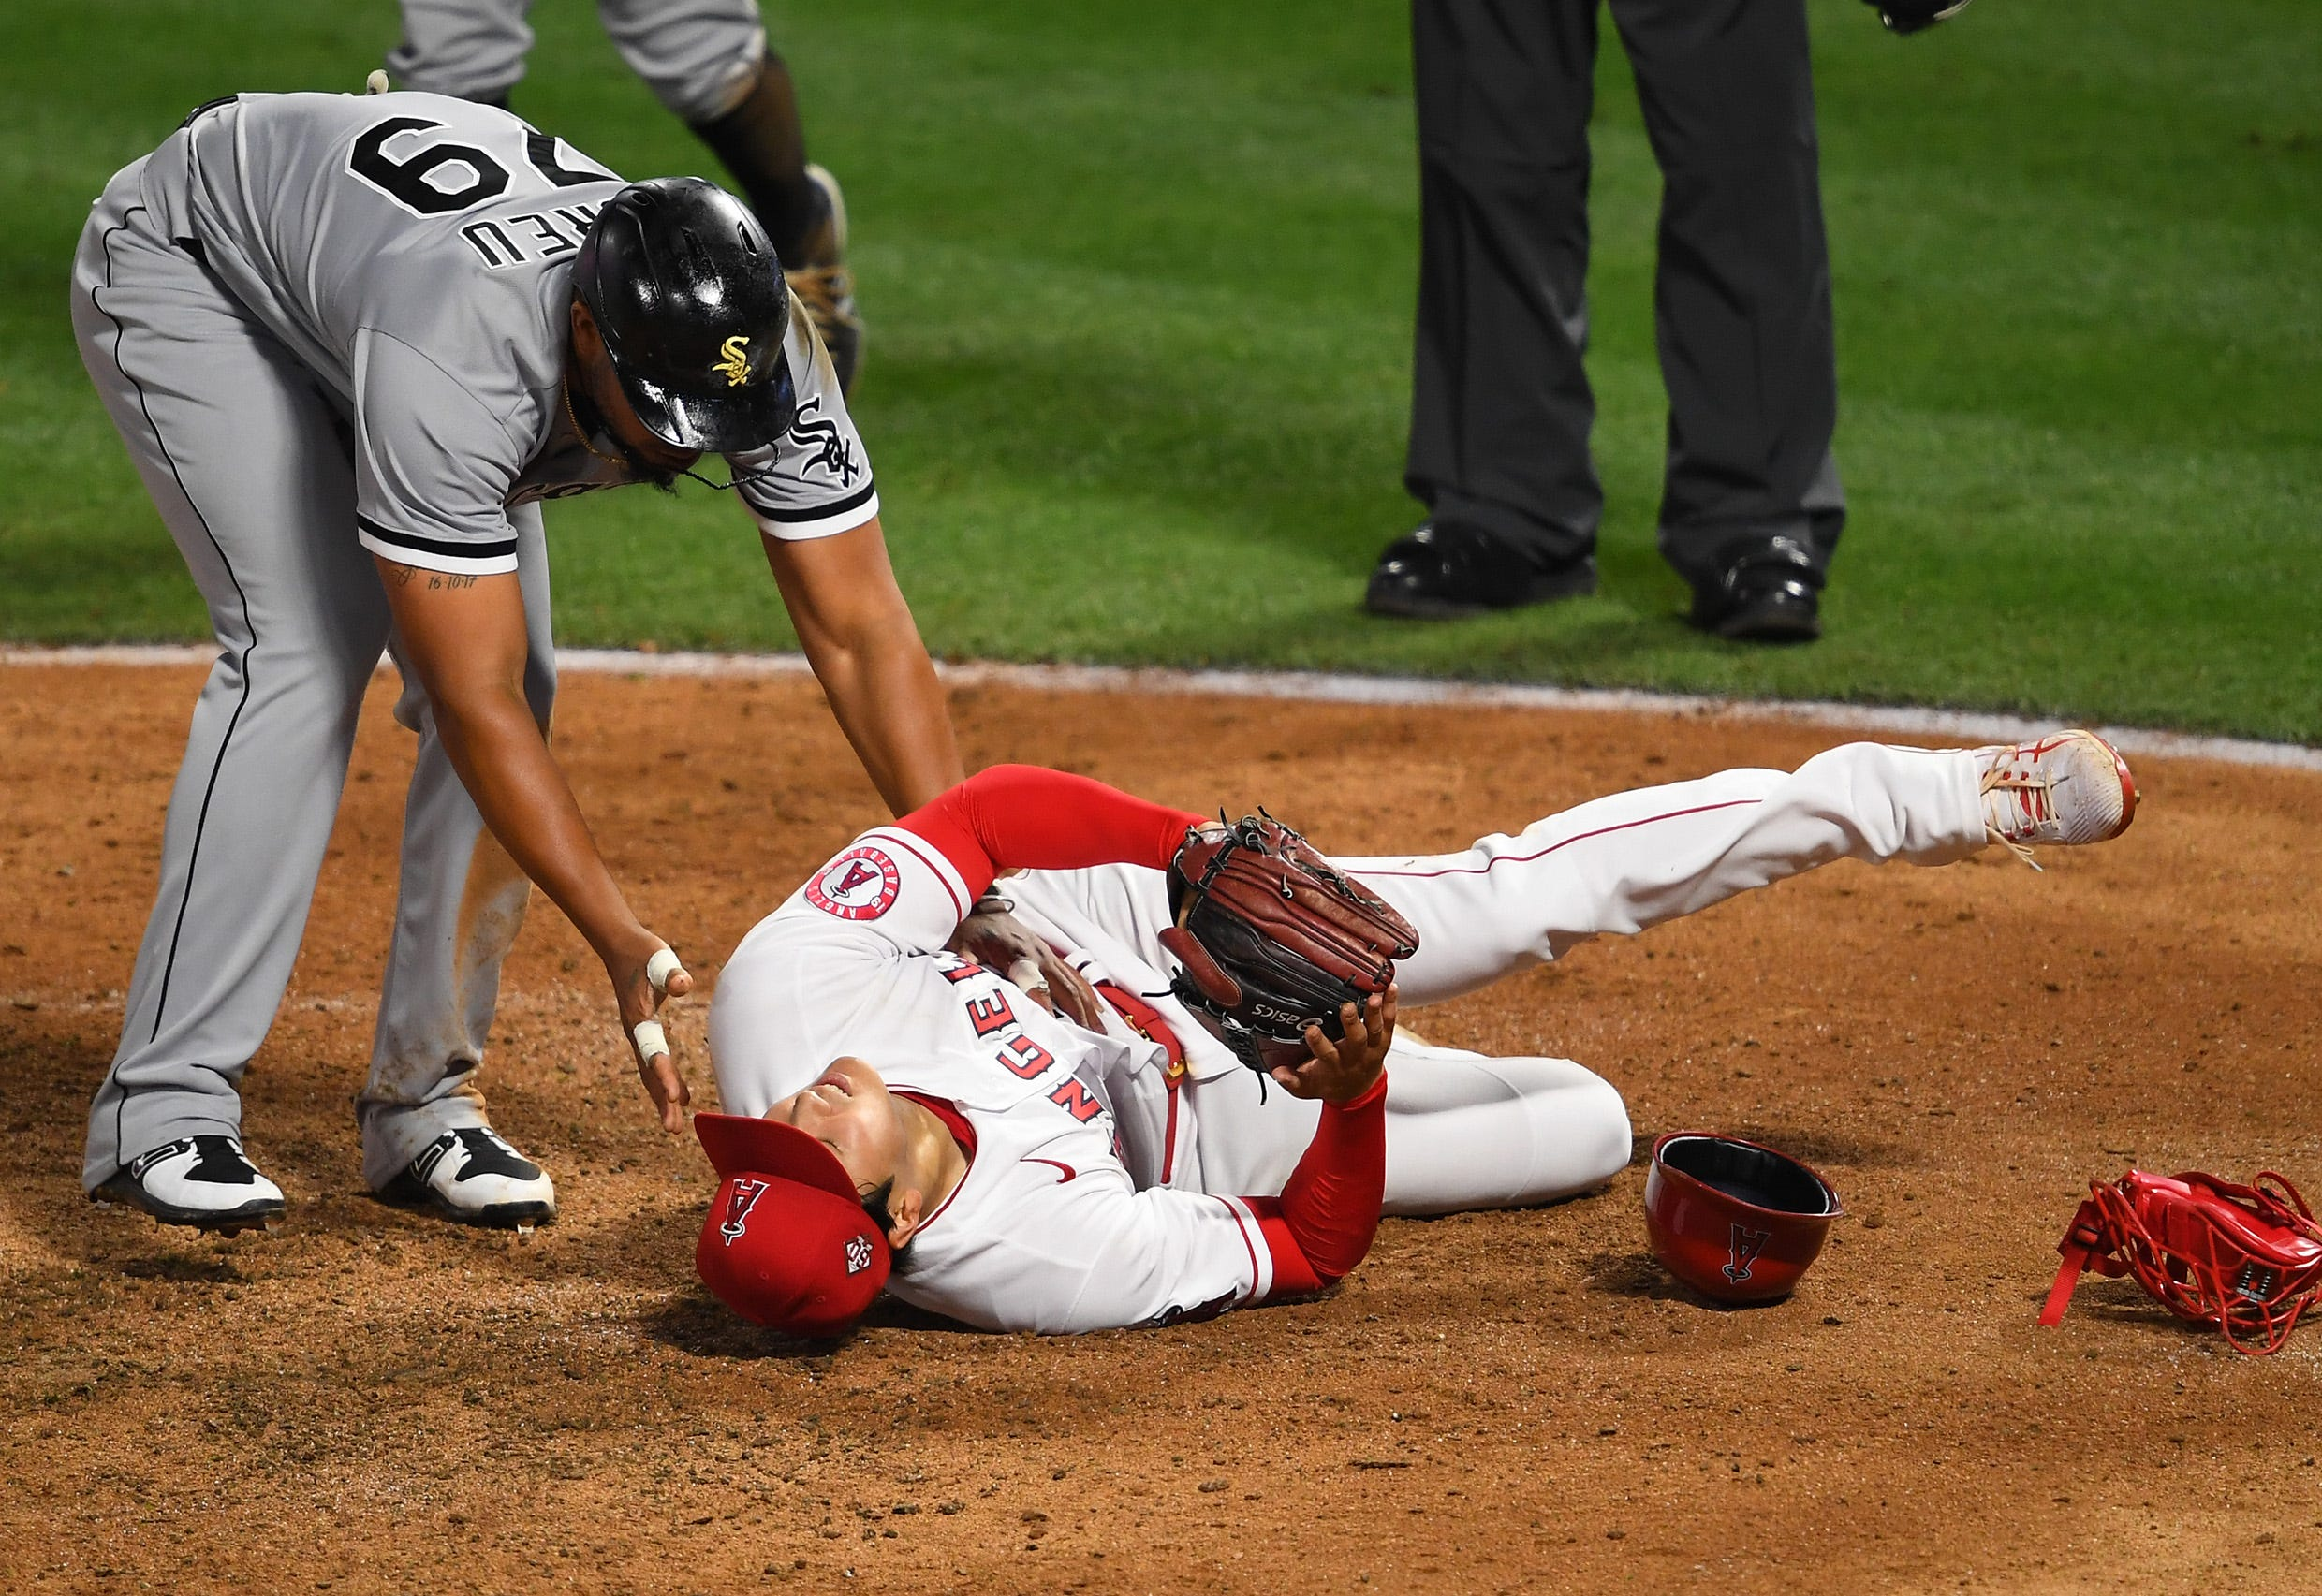 Shohei Ohtani hits home run in historic start, but leaves game vs. White Sox after painful fifth inning